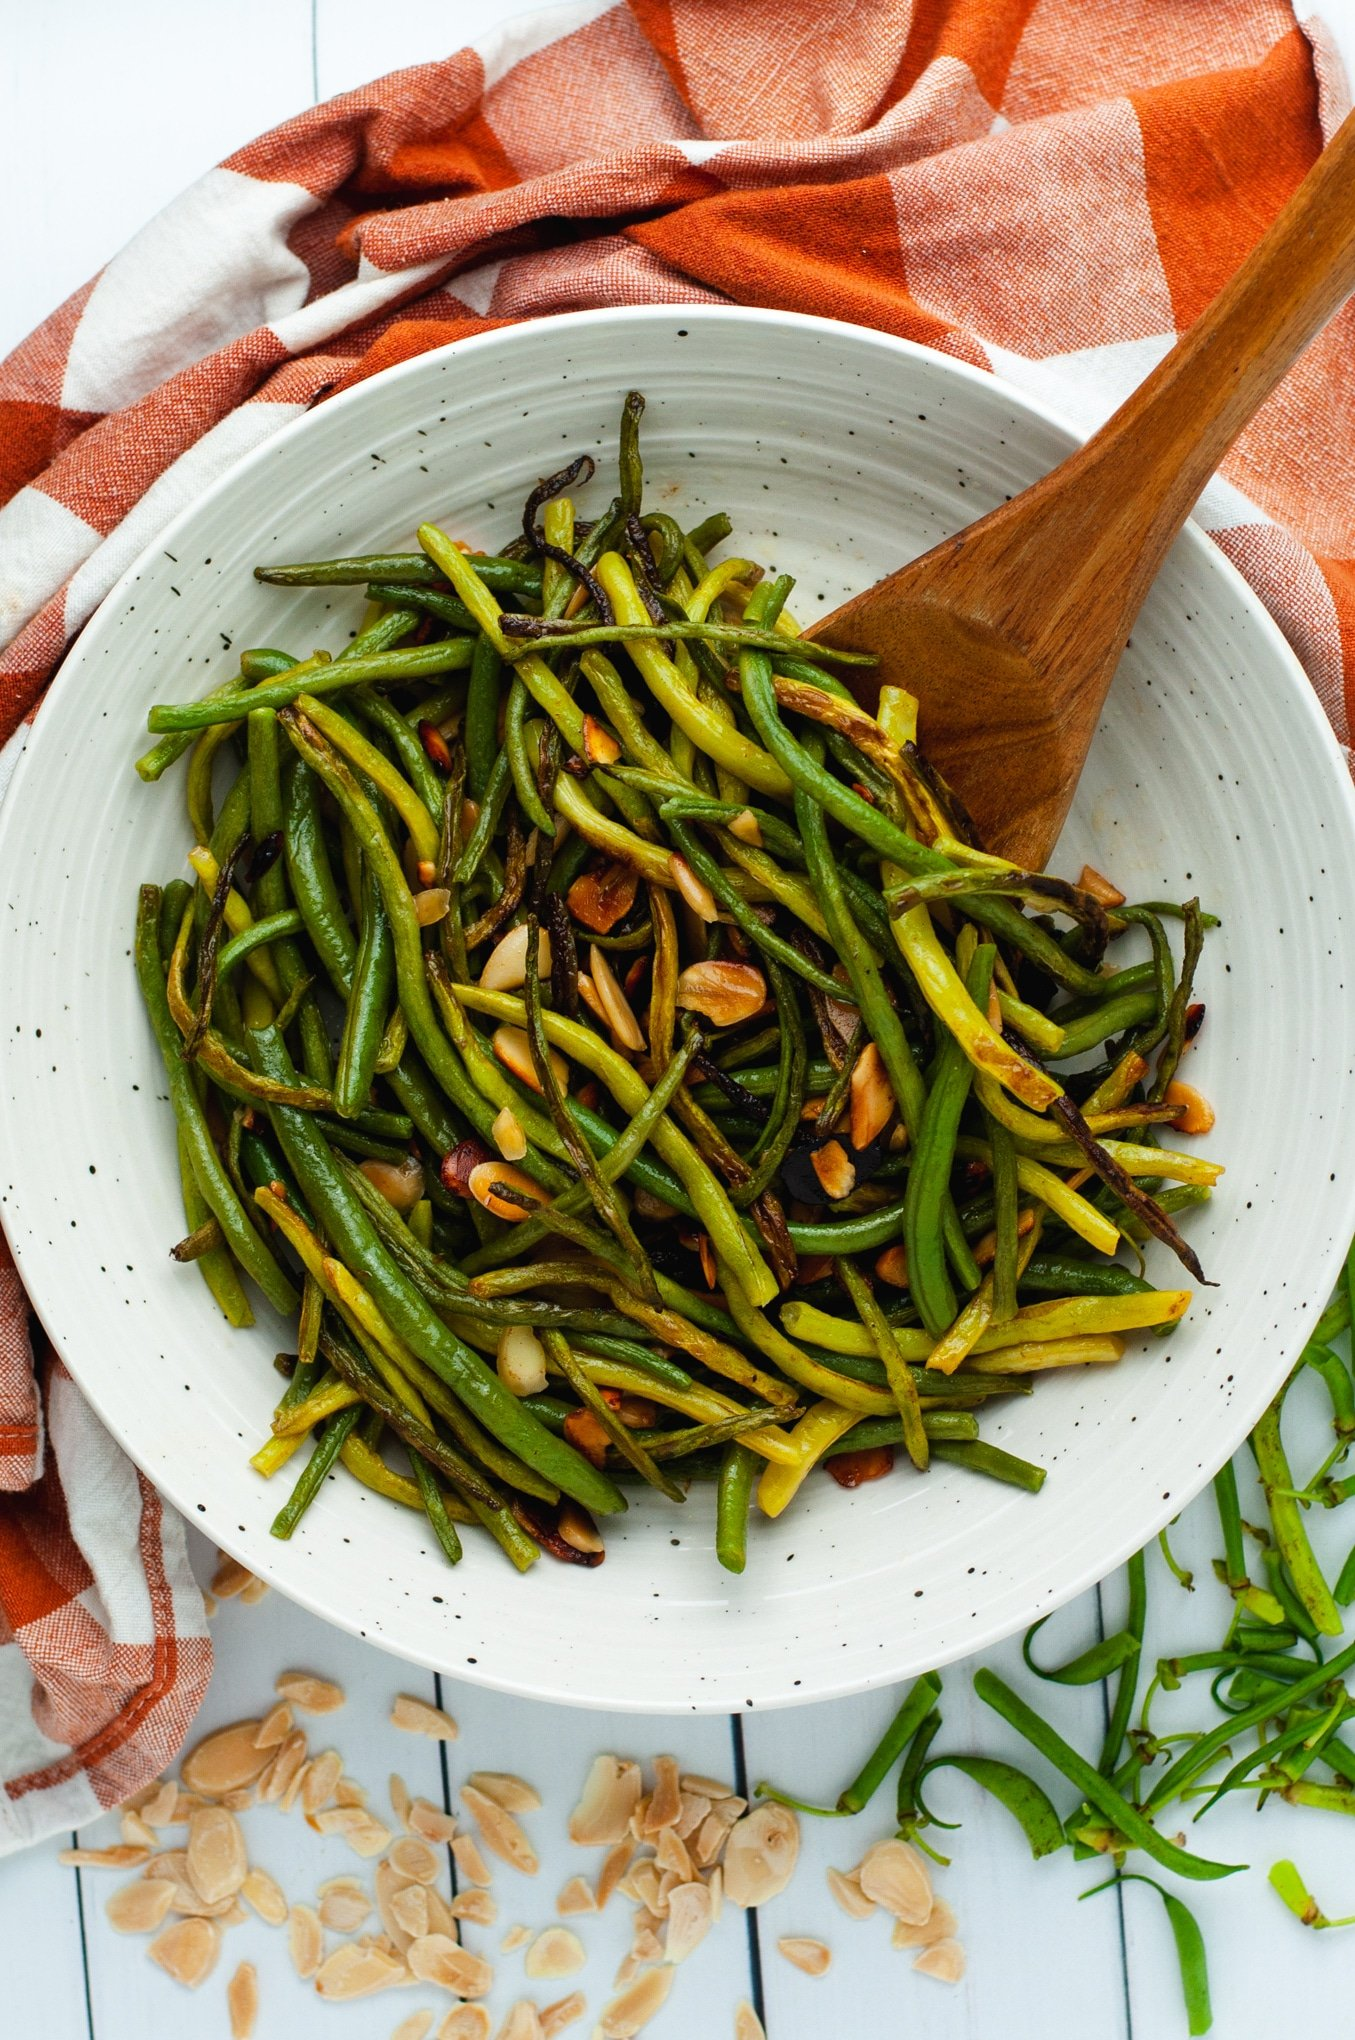 Overhead view of green beans almondine in a white bowl on an orange linen